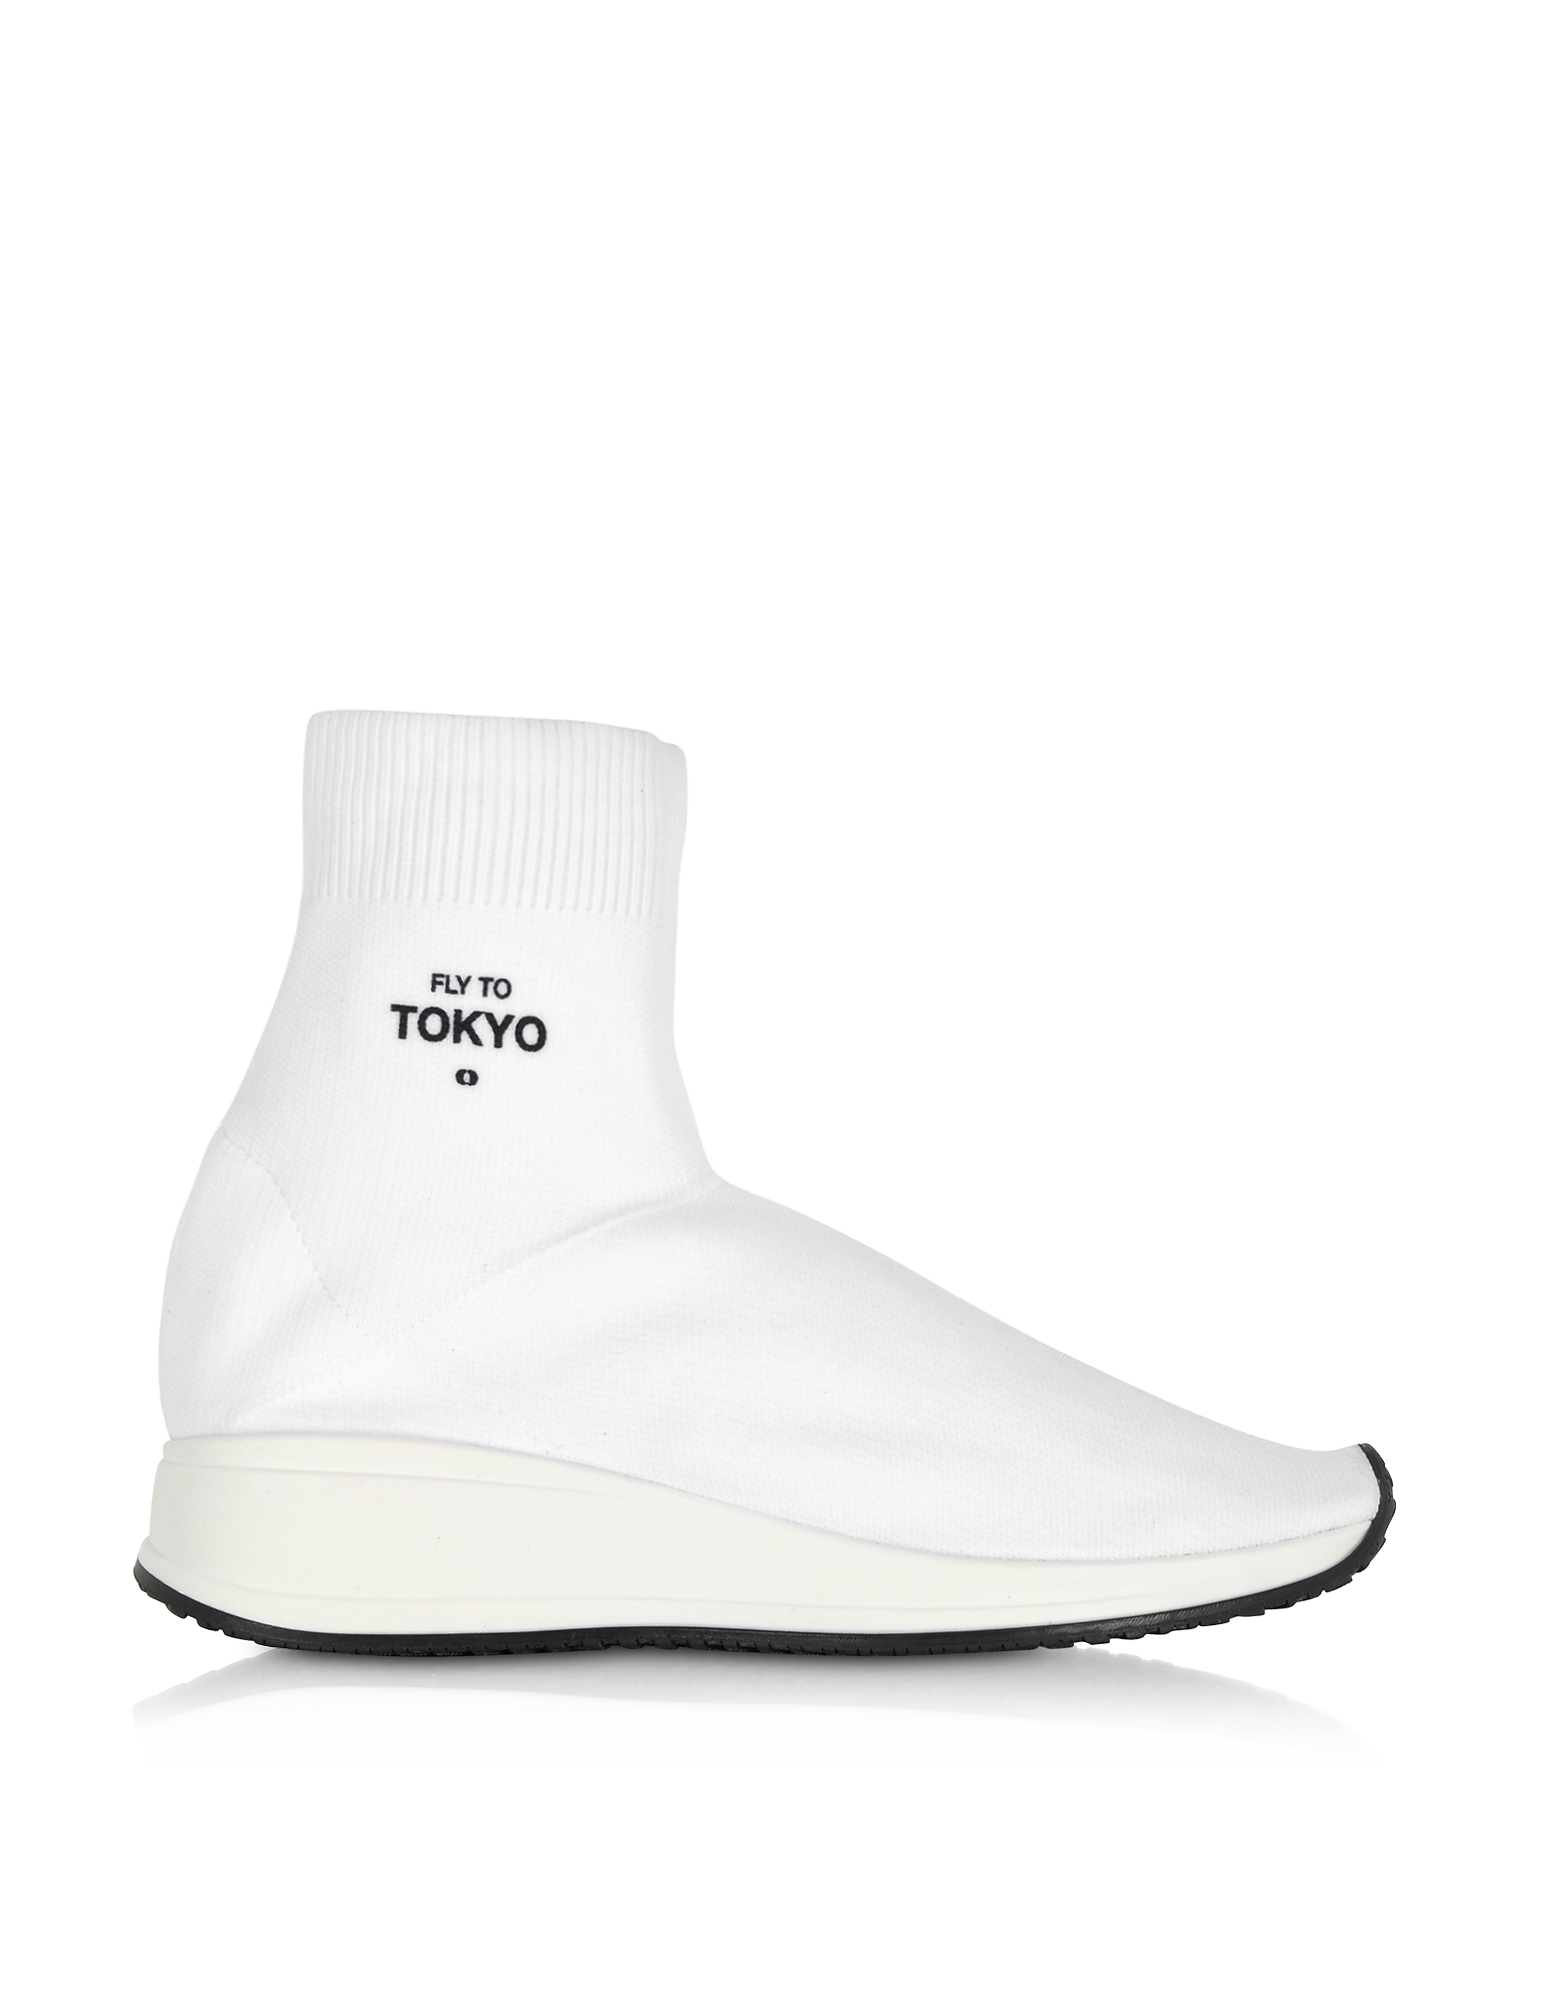 Joshua Sanders Shoes, Fly To Tokyo White Nylon Sock Unisex Sneakers